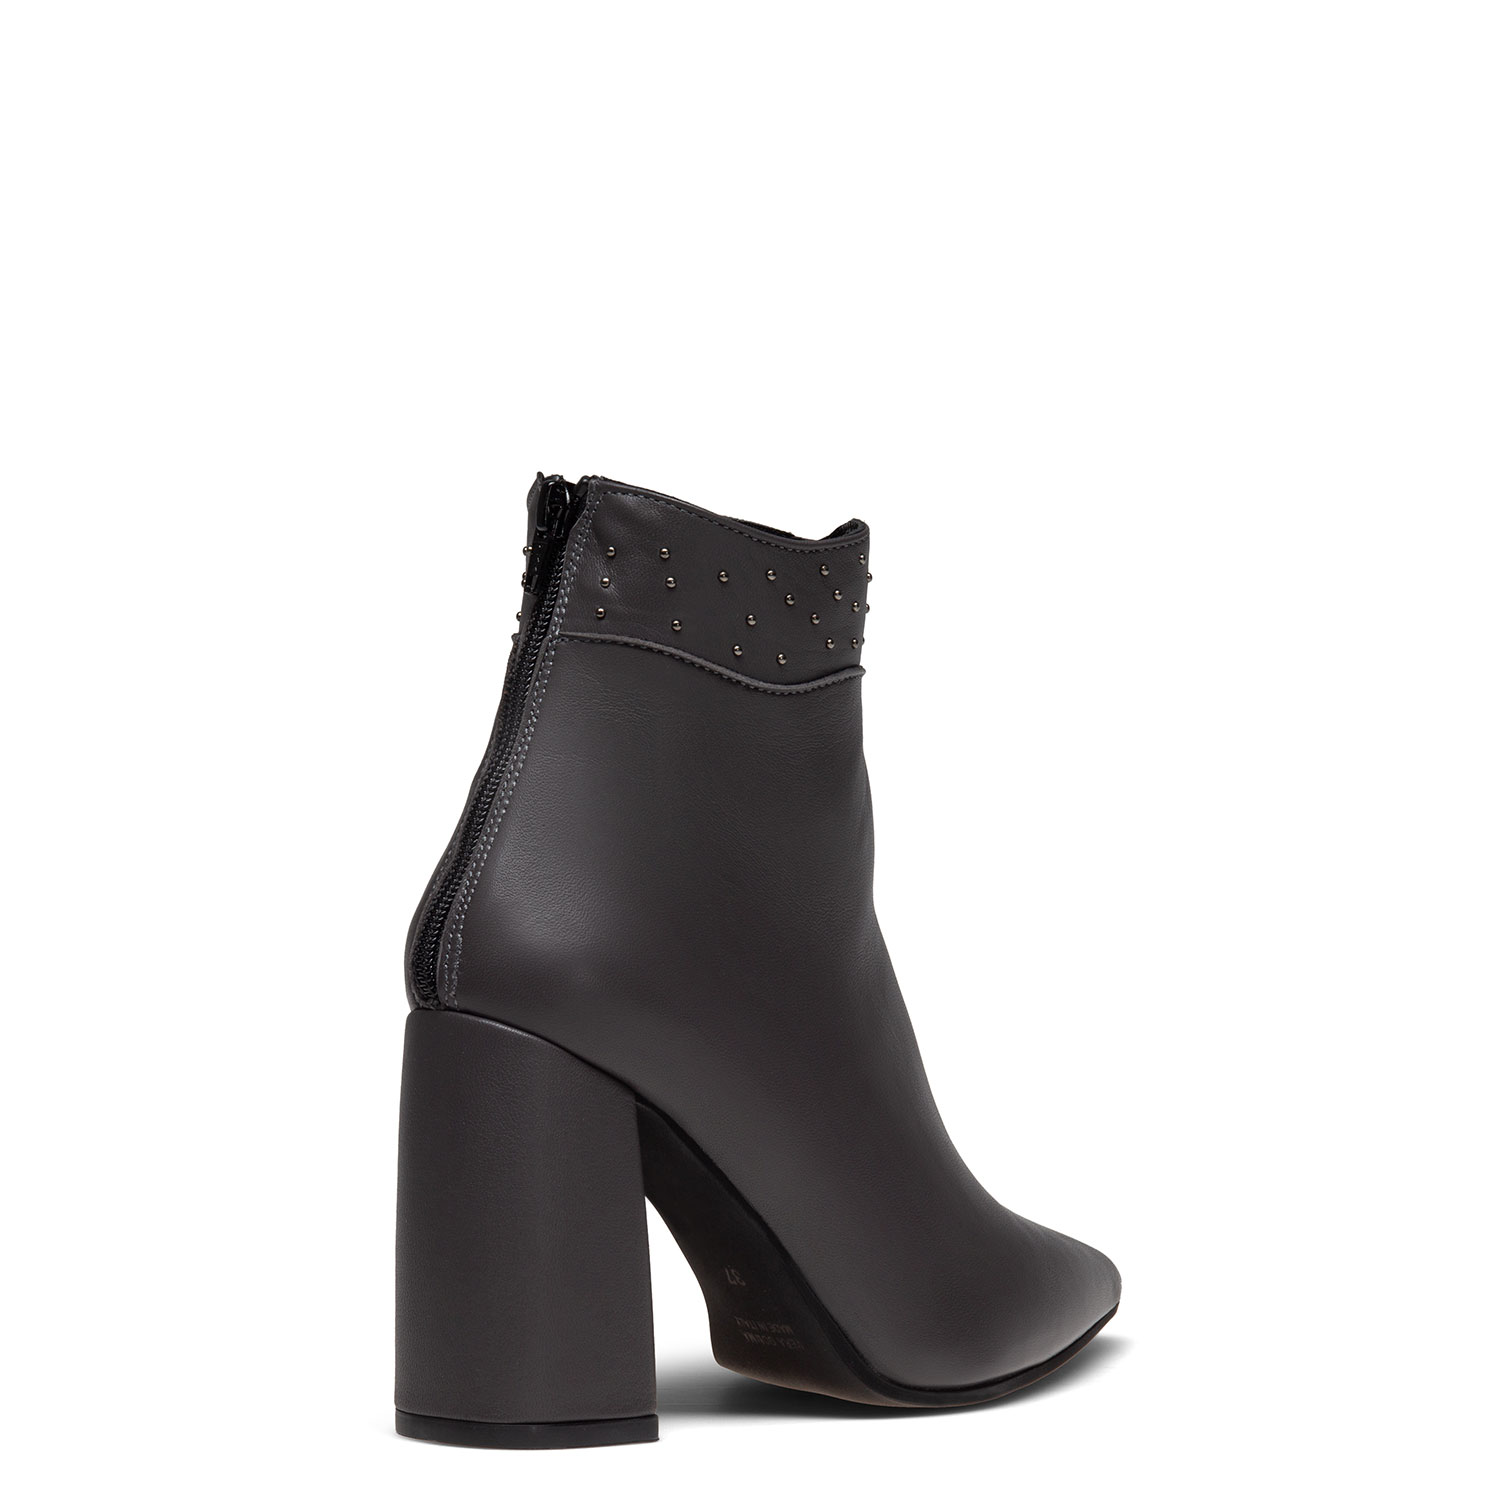 Women's ankle boots PAZOLINI GC-X0490-10